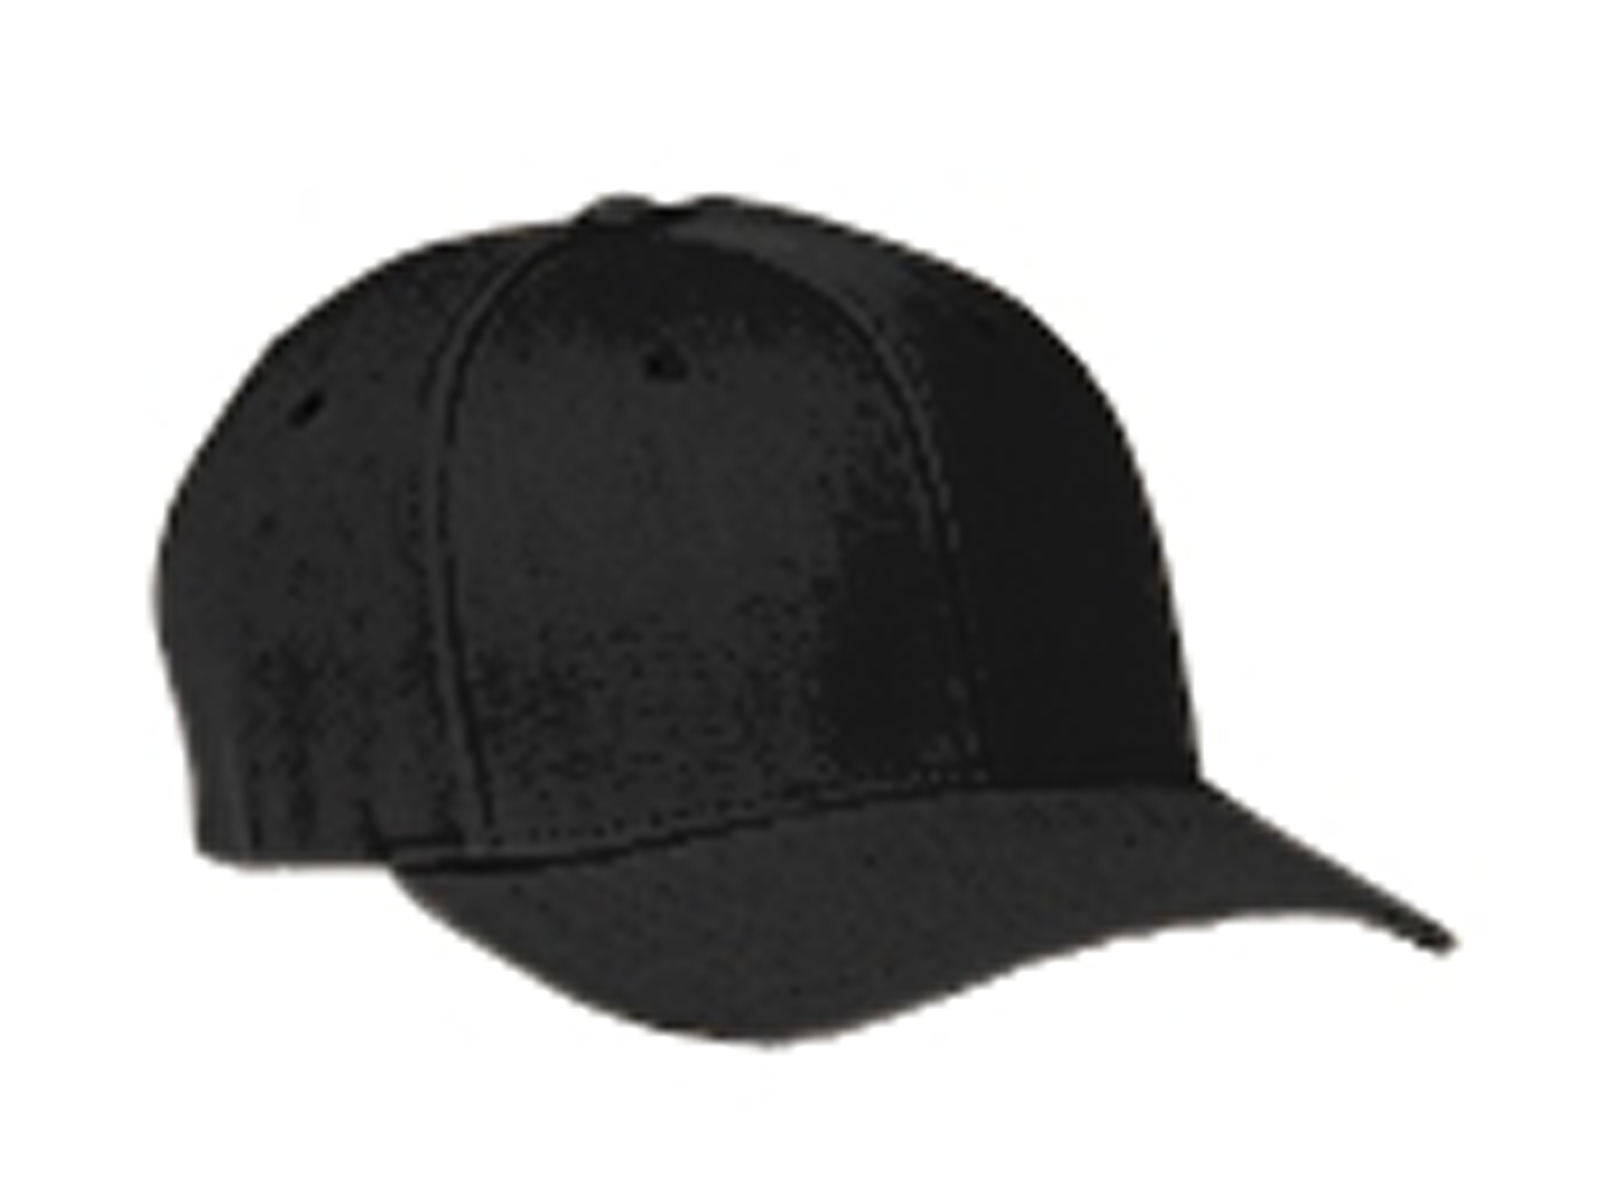 Flexfit 6477 - Adult Wool Blend Cap